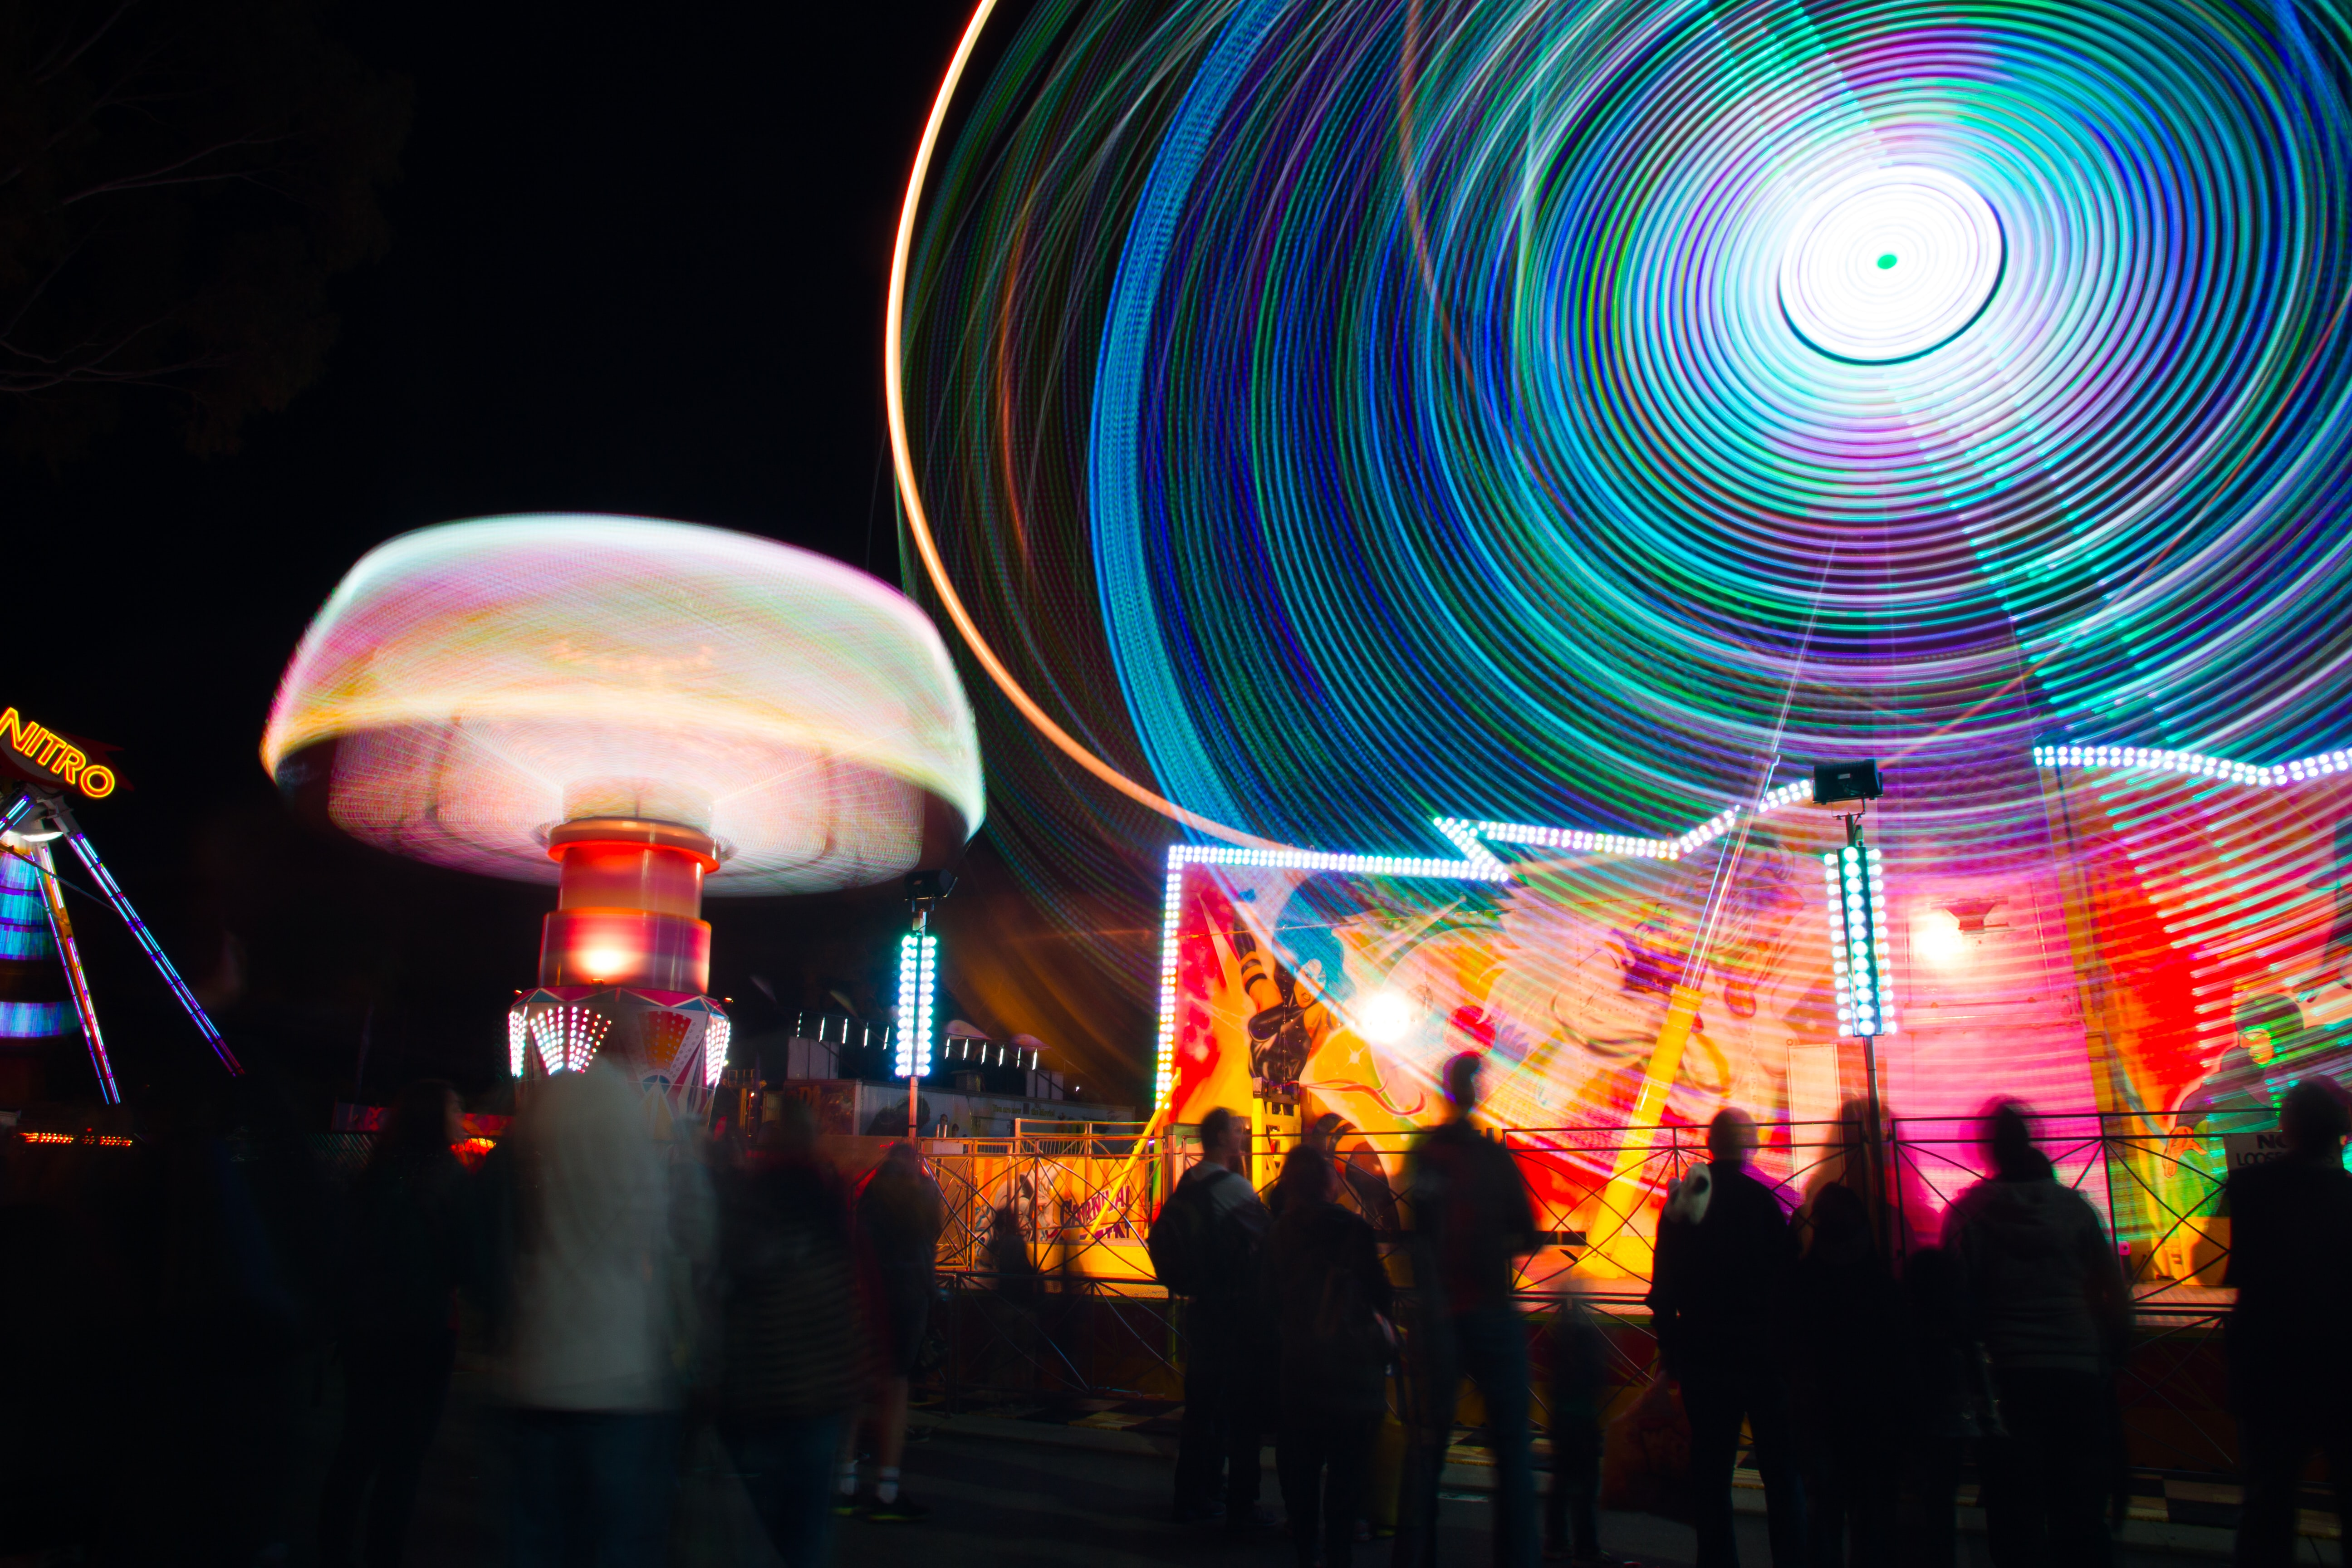 A ride at an amusement park with light trails, plus the Perth Royal Show crowd